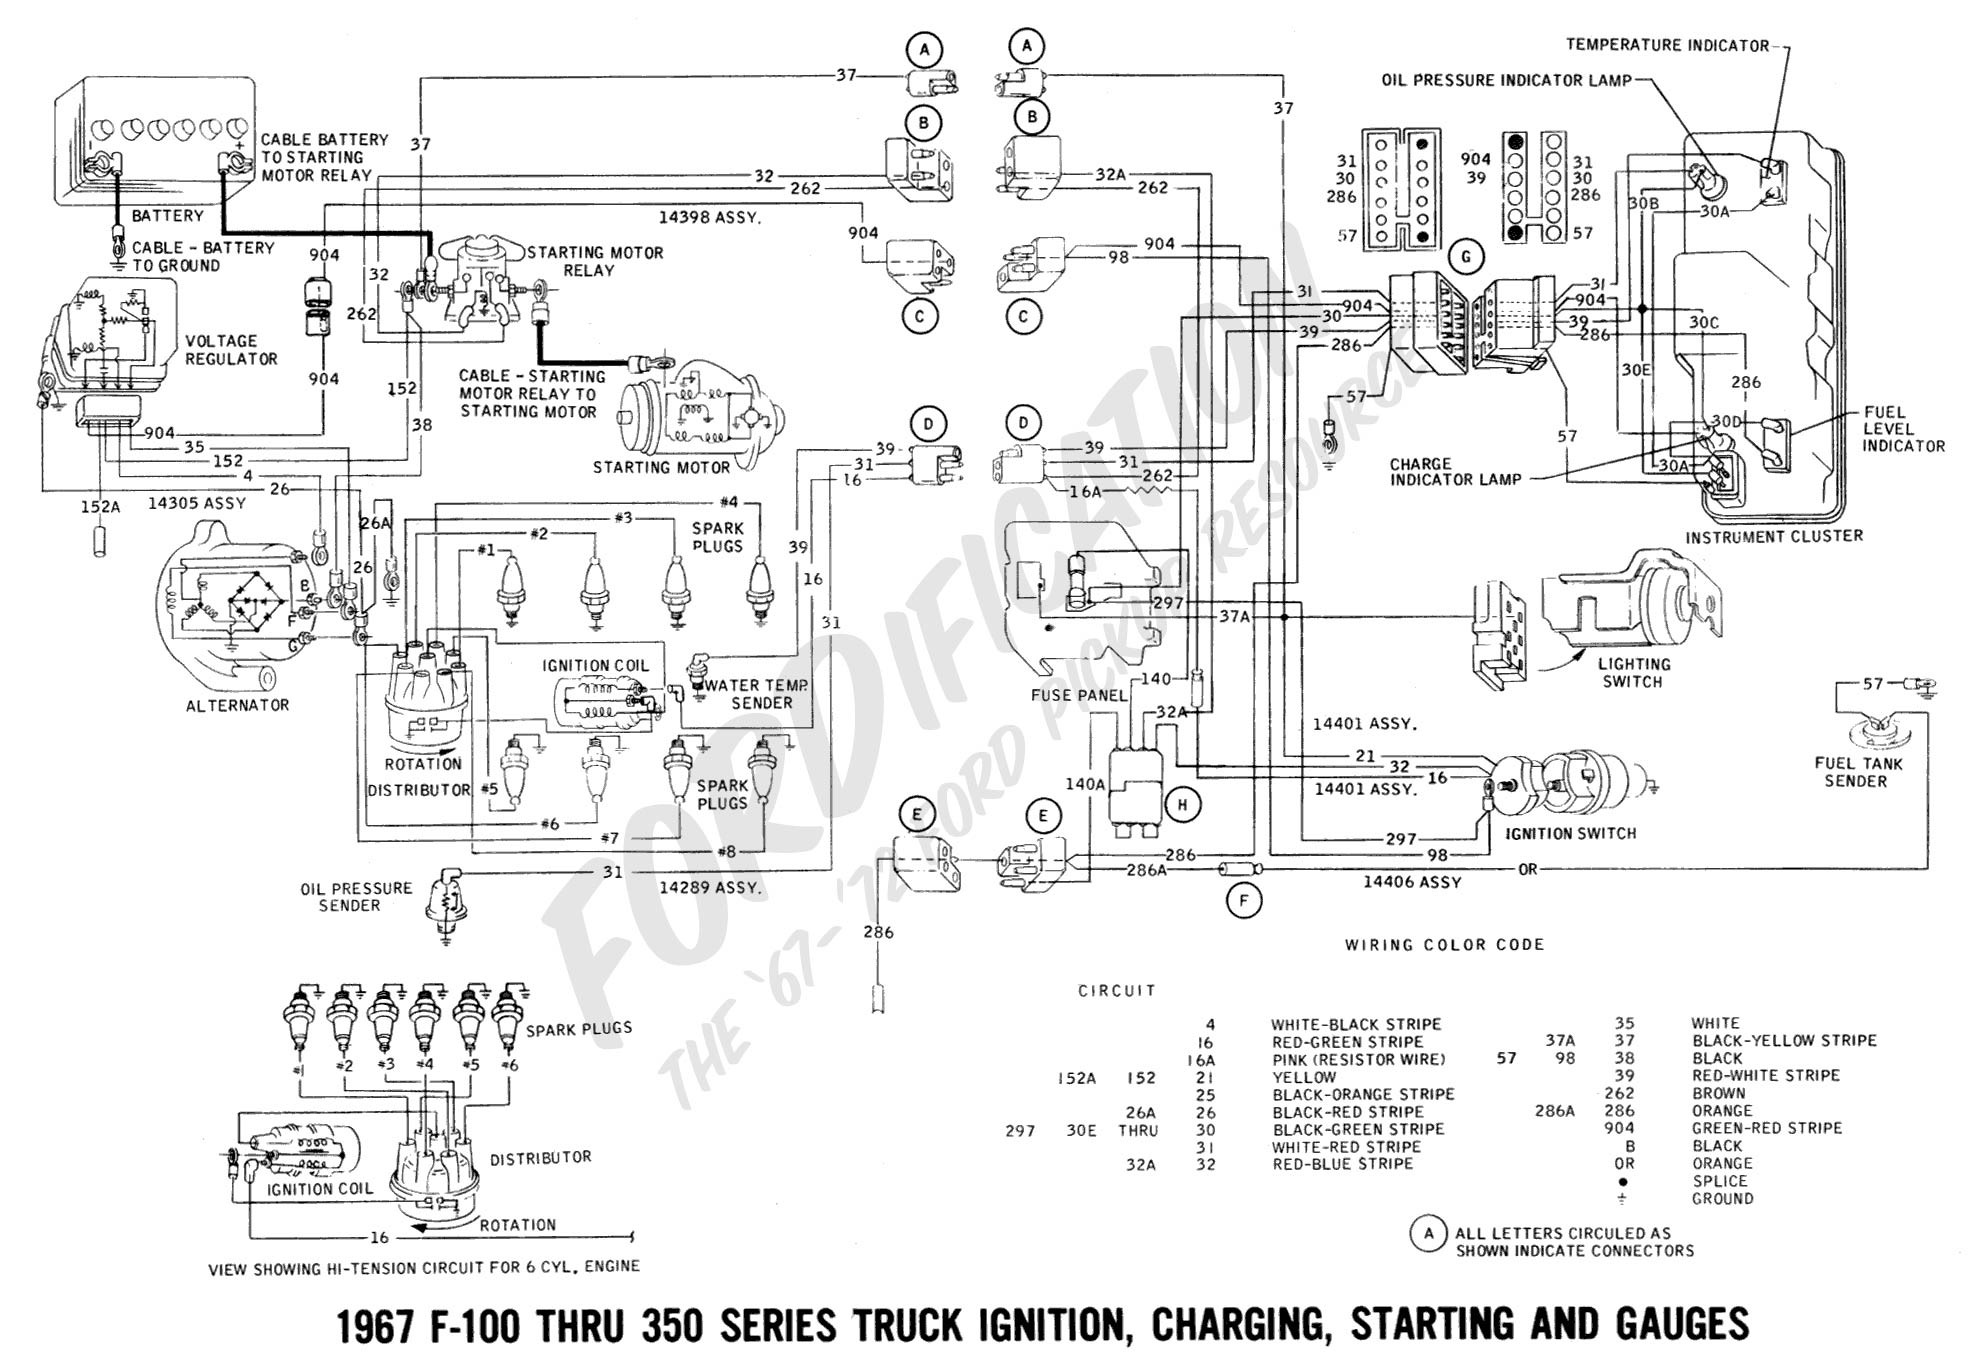 Wiring Diagrams For Ford Product Dexta Diagram Truck Technical Drawings And Rh Detoxicrecenze Com